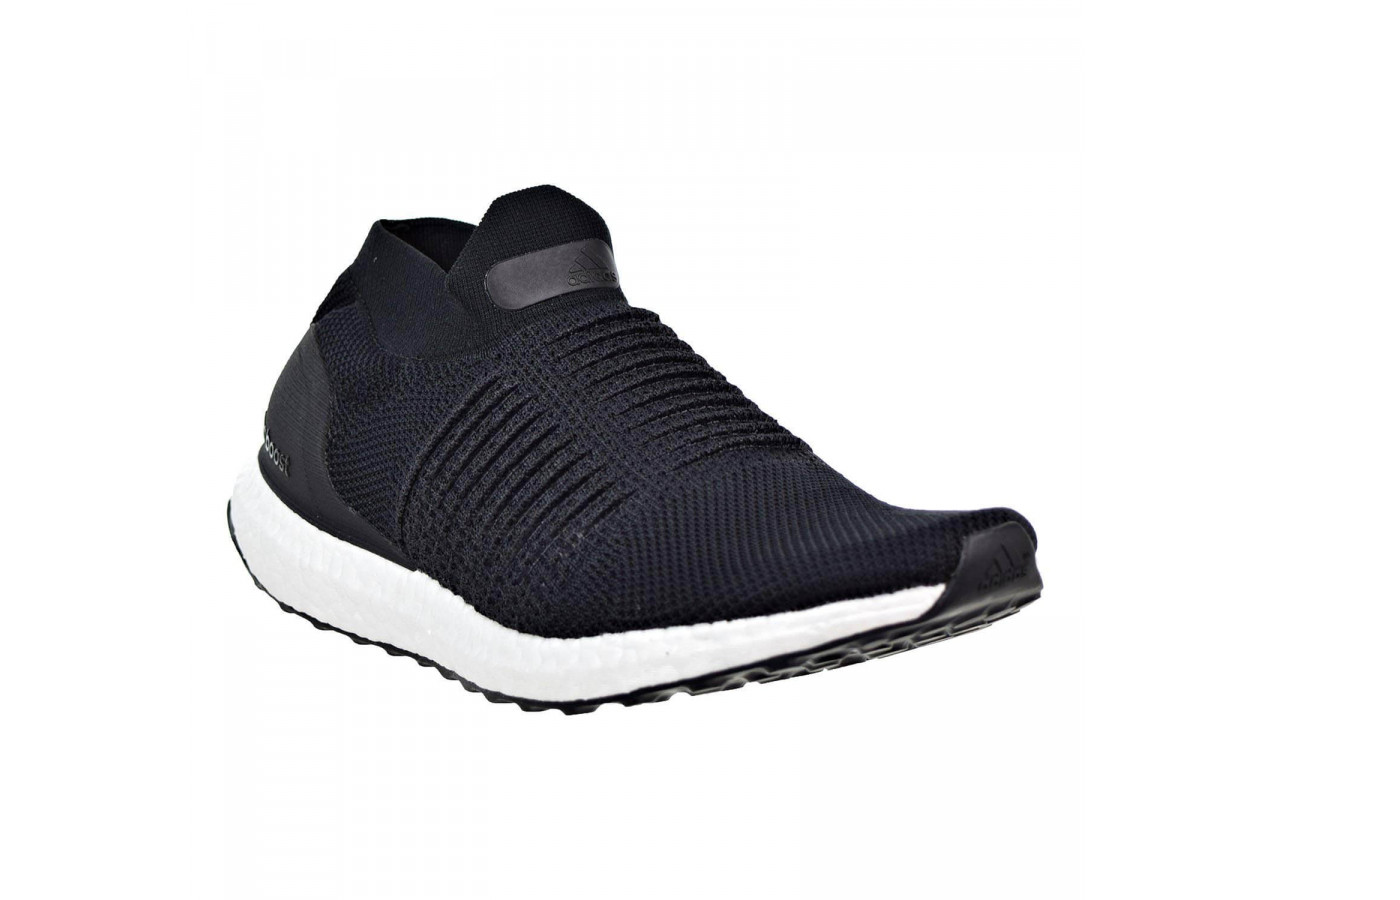 8d3bbf7c5 The Adidas Ultra Boost Laceless comes in very few colors.